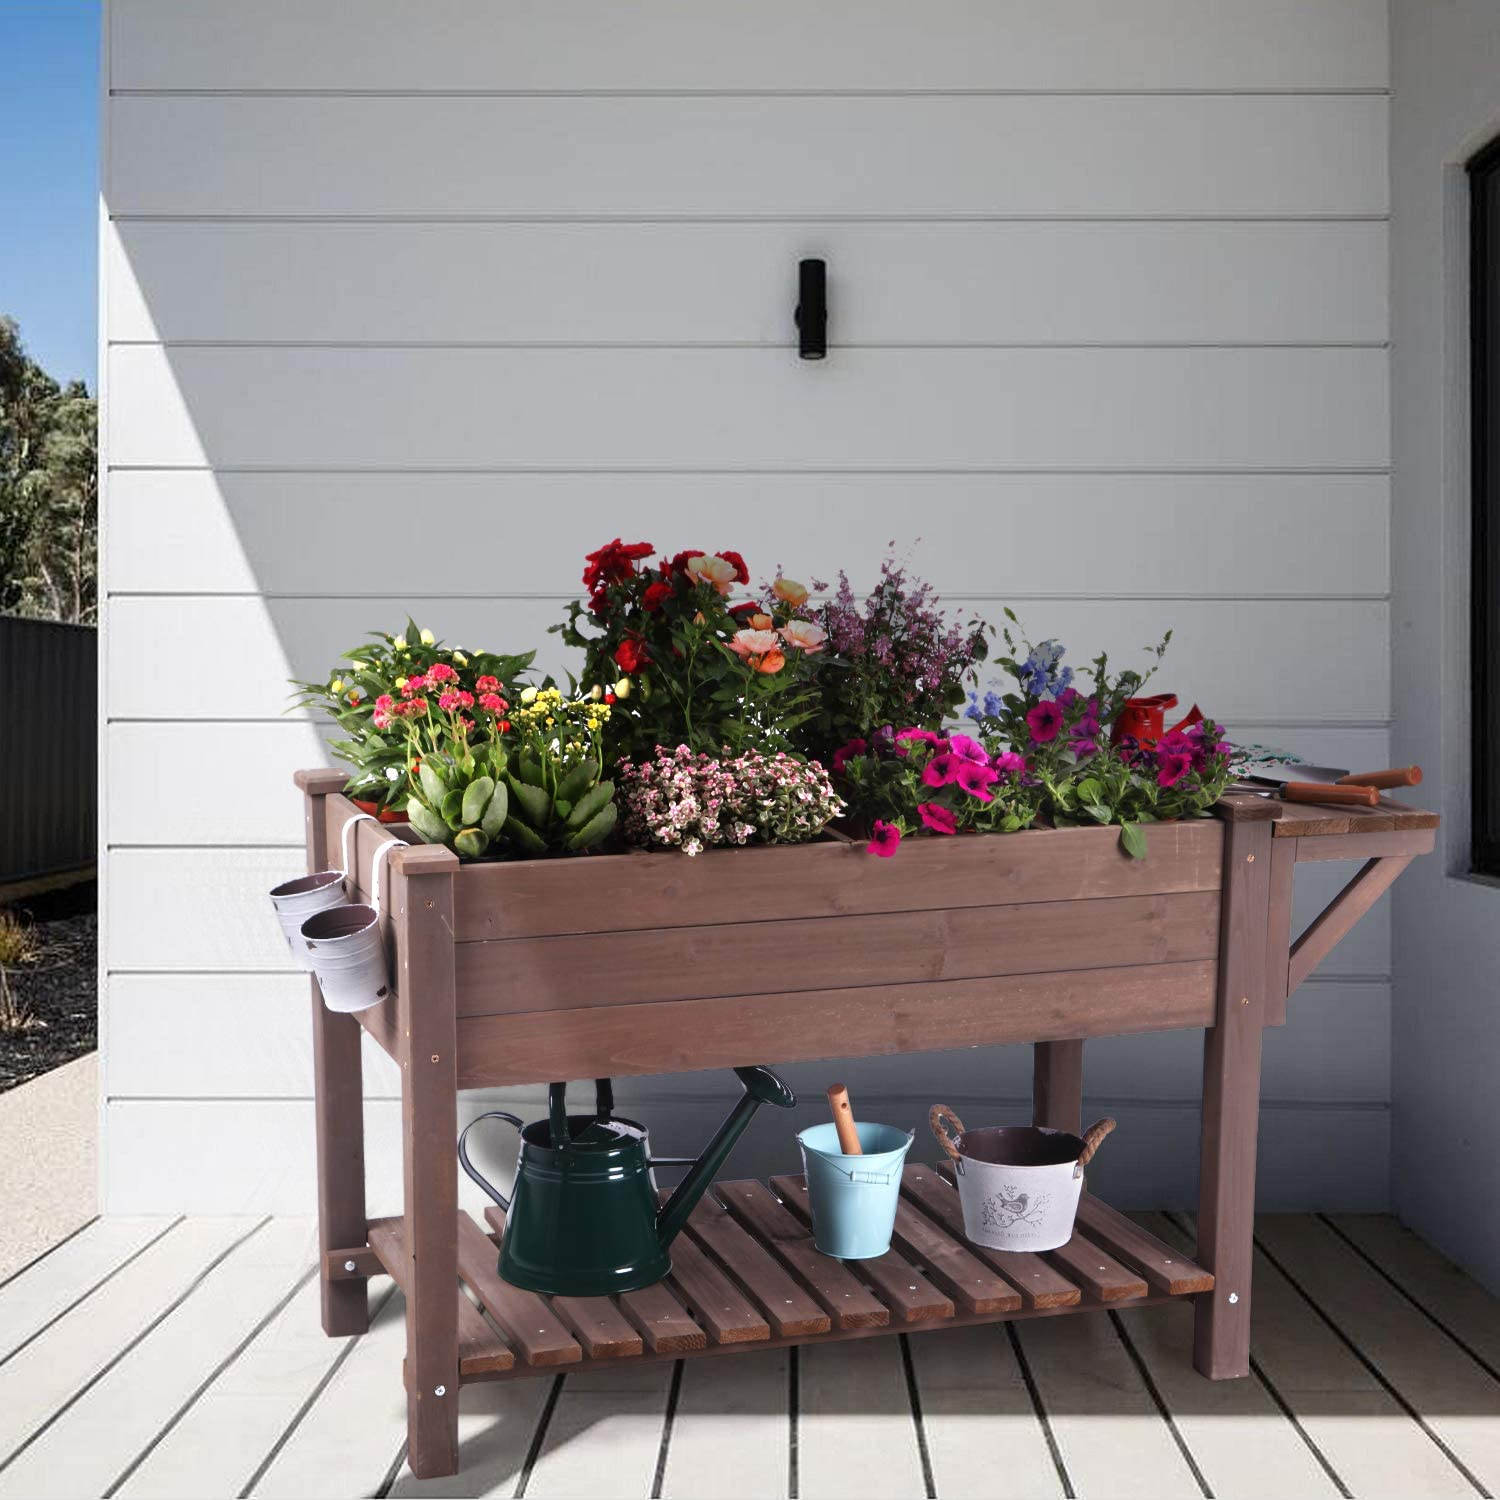 Raised Garden Bed for Herbs, Patio Elevated Flower Planter Vegetable Boxes with Grow Grid - Large Storage Shelf